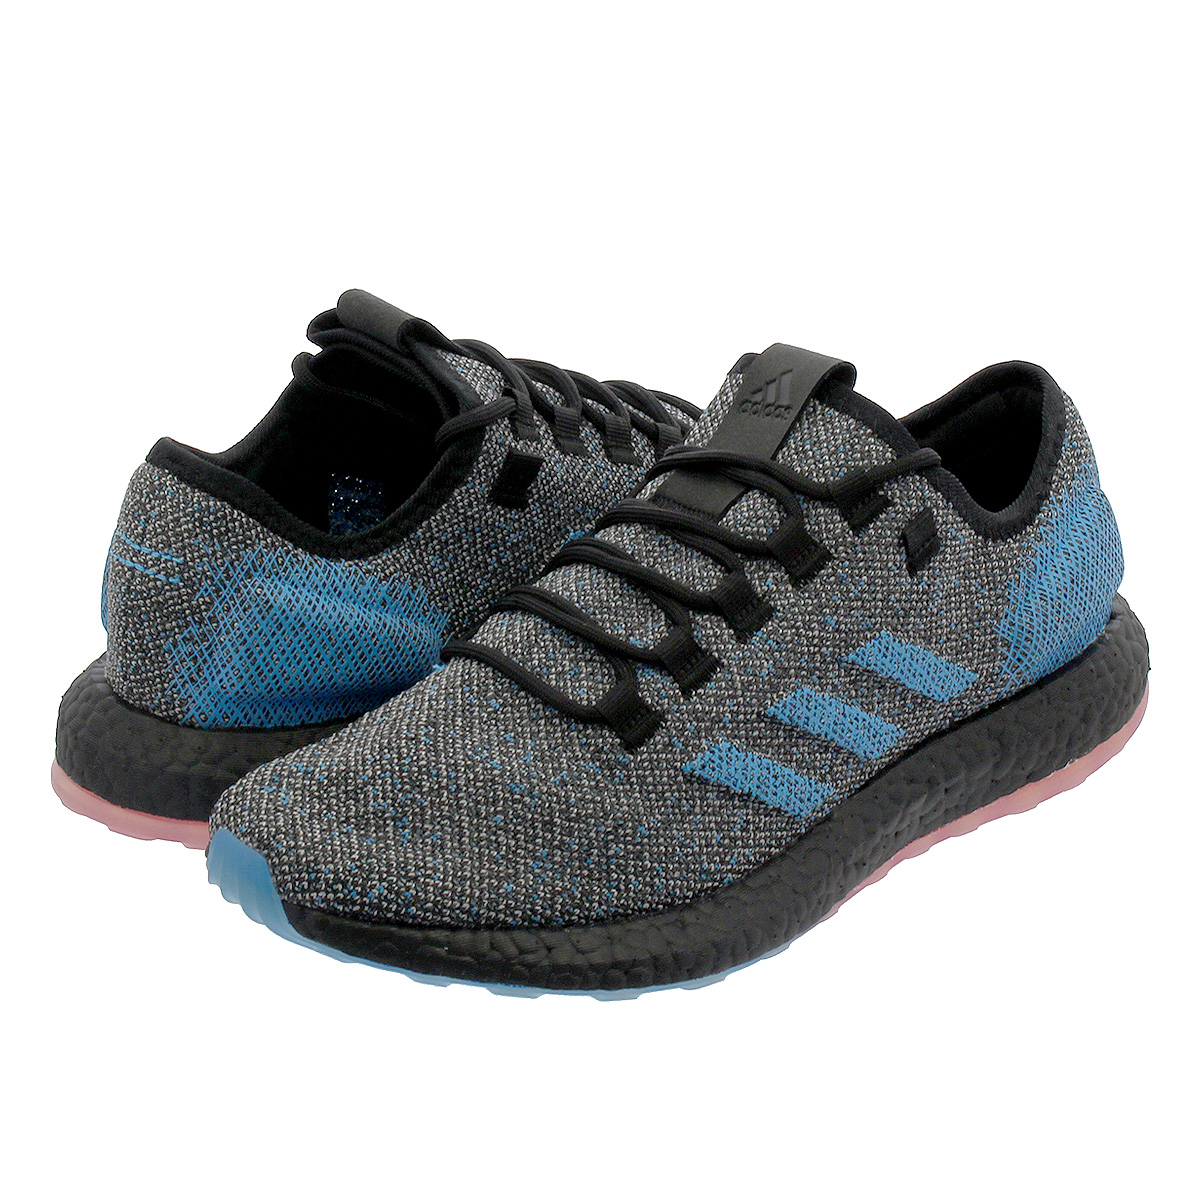 a9ed1d1441dd9 adidas PureBOOST LTD Adidas pure boost LTD CORE BLACK CORE BLACK ACTIVE RED  b37811